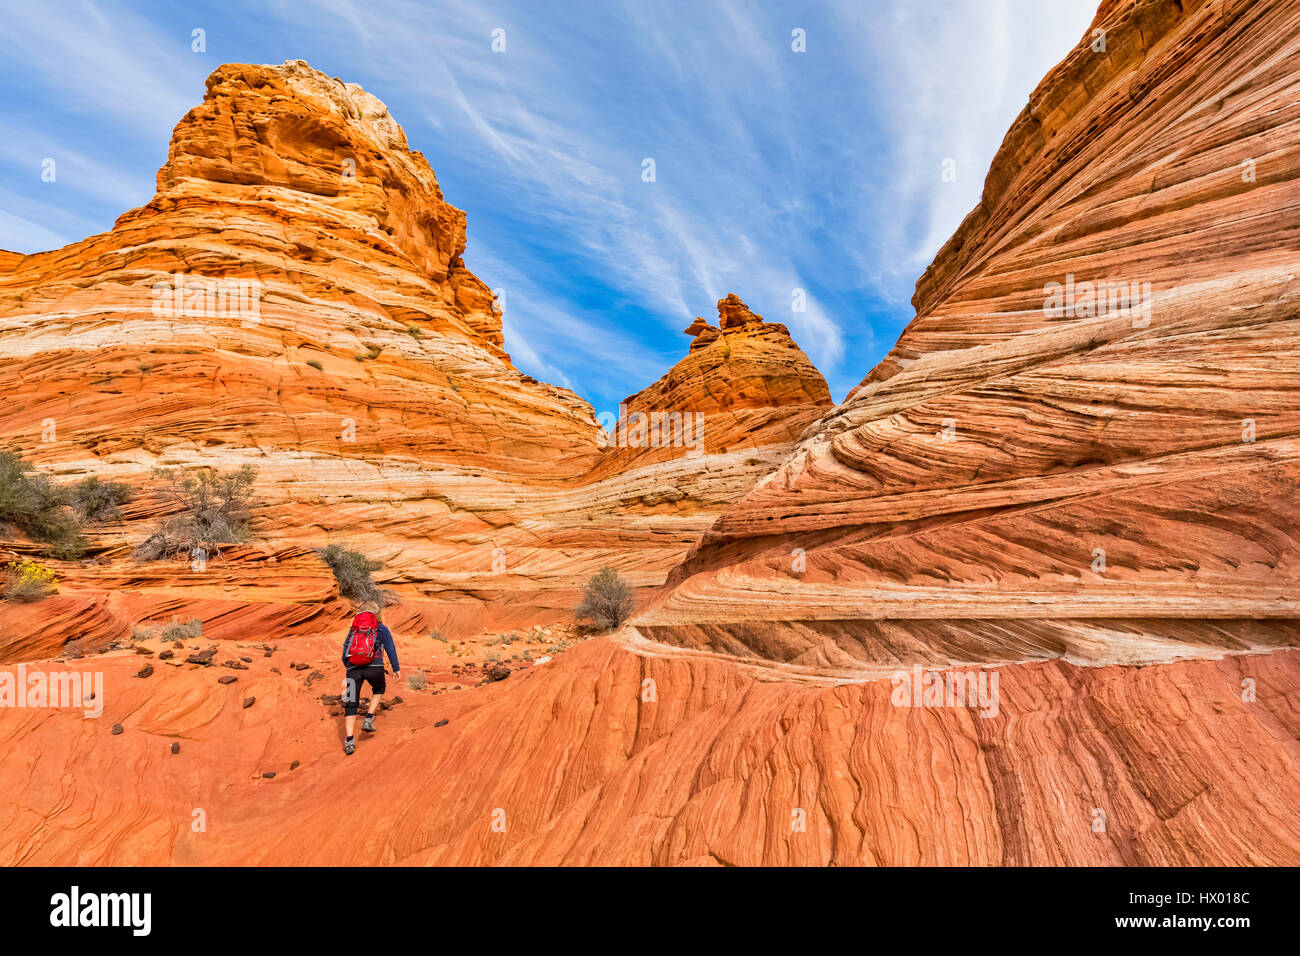 USA, Arizona, Page, Paria Canyon, Vermillion Cliffs Wilderness, Coyote Buttes, tourist hiking at red stone pyramids Stock Photo